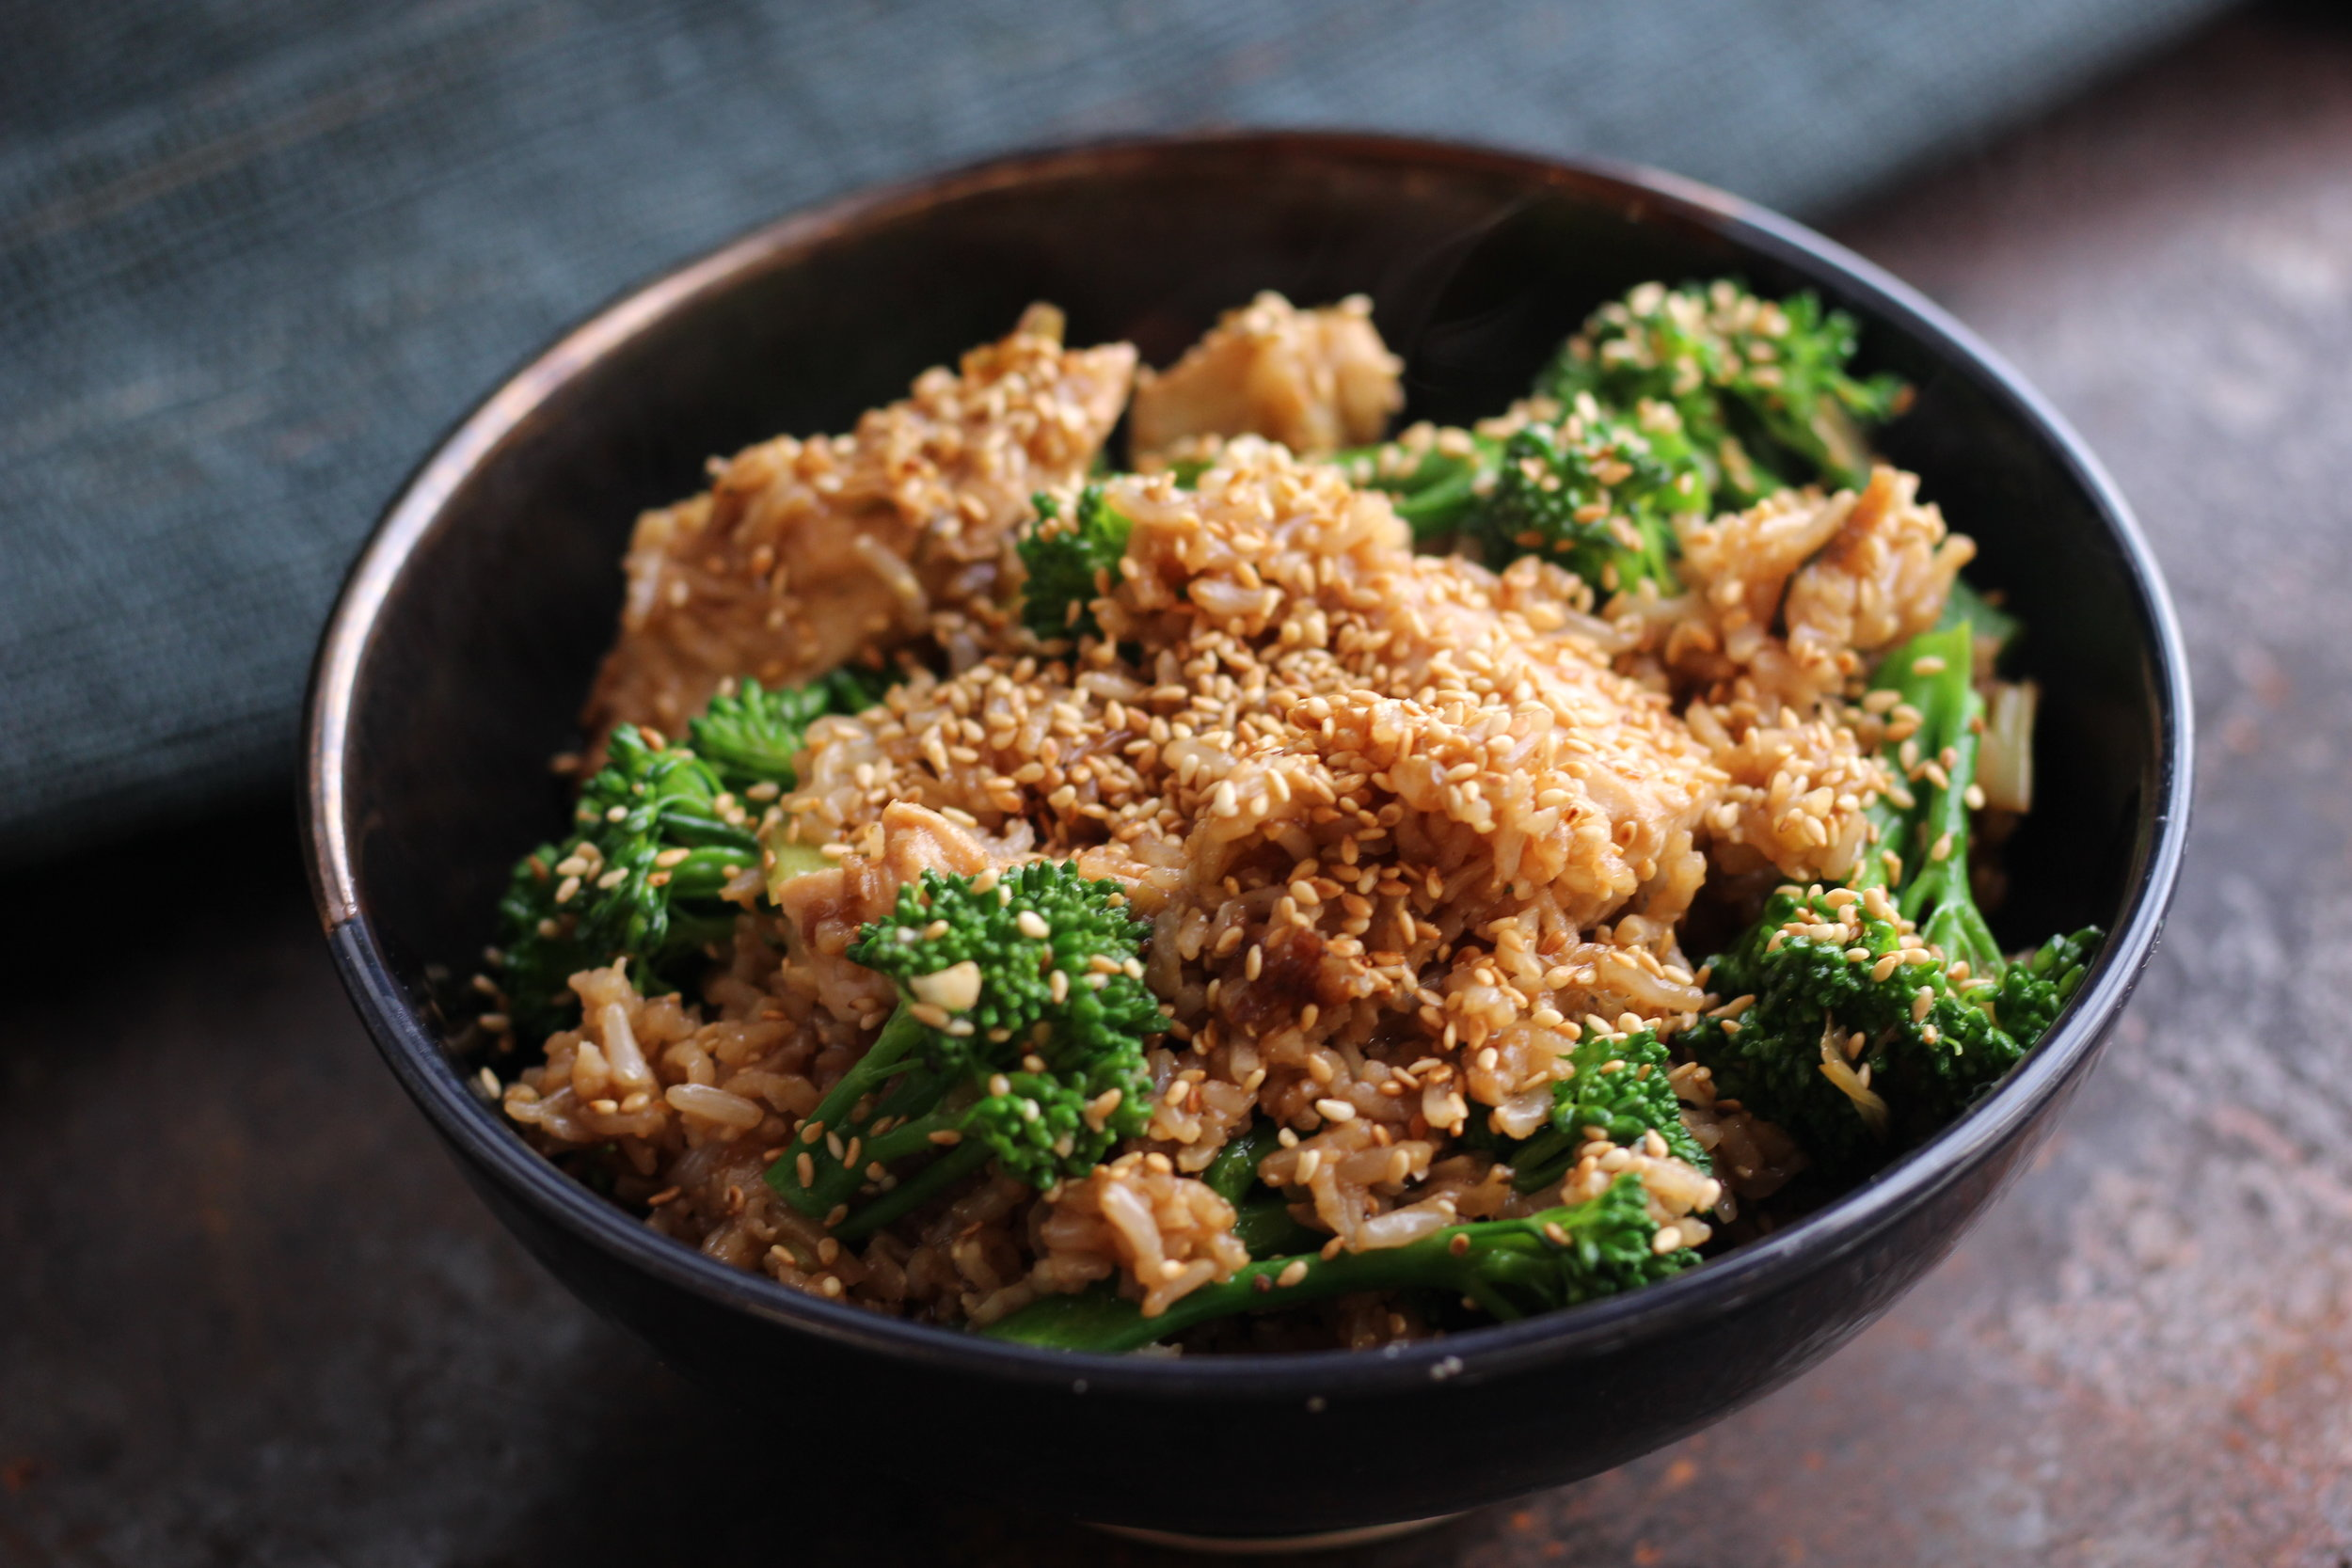 Quick, easy & deliciously healthy! Miso Sesame Chicken served in Rialheim Regal Bowl.